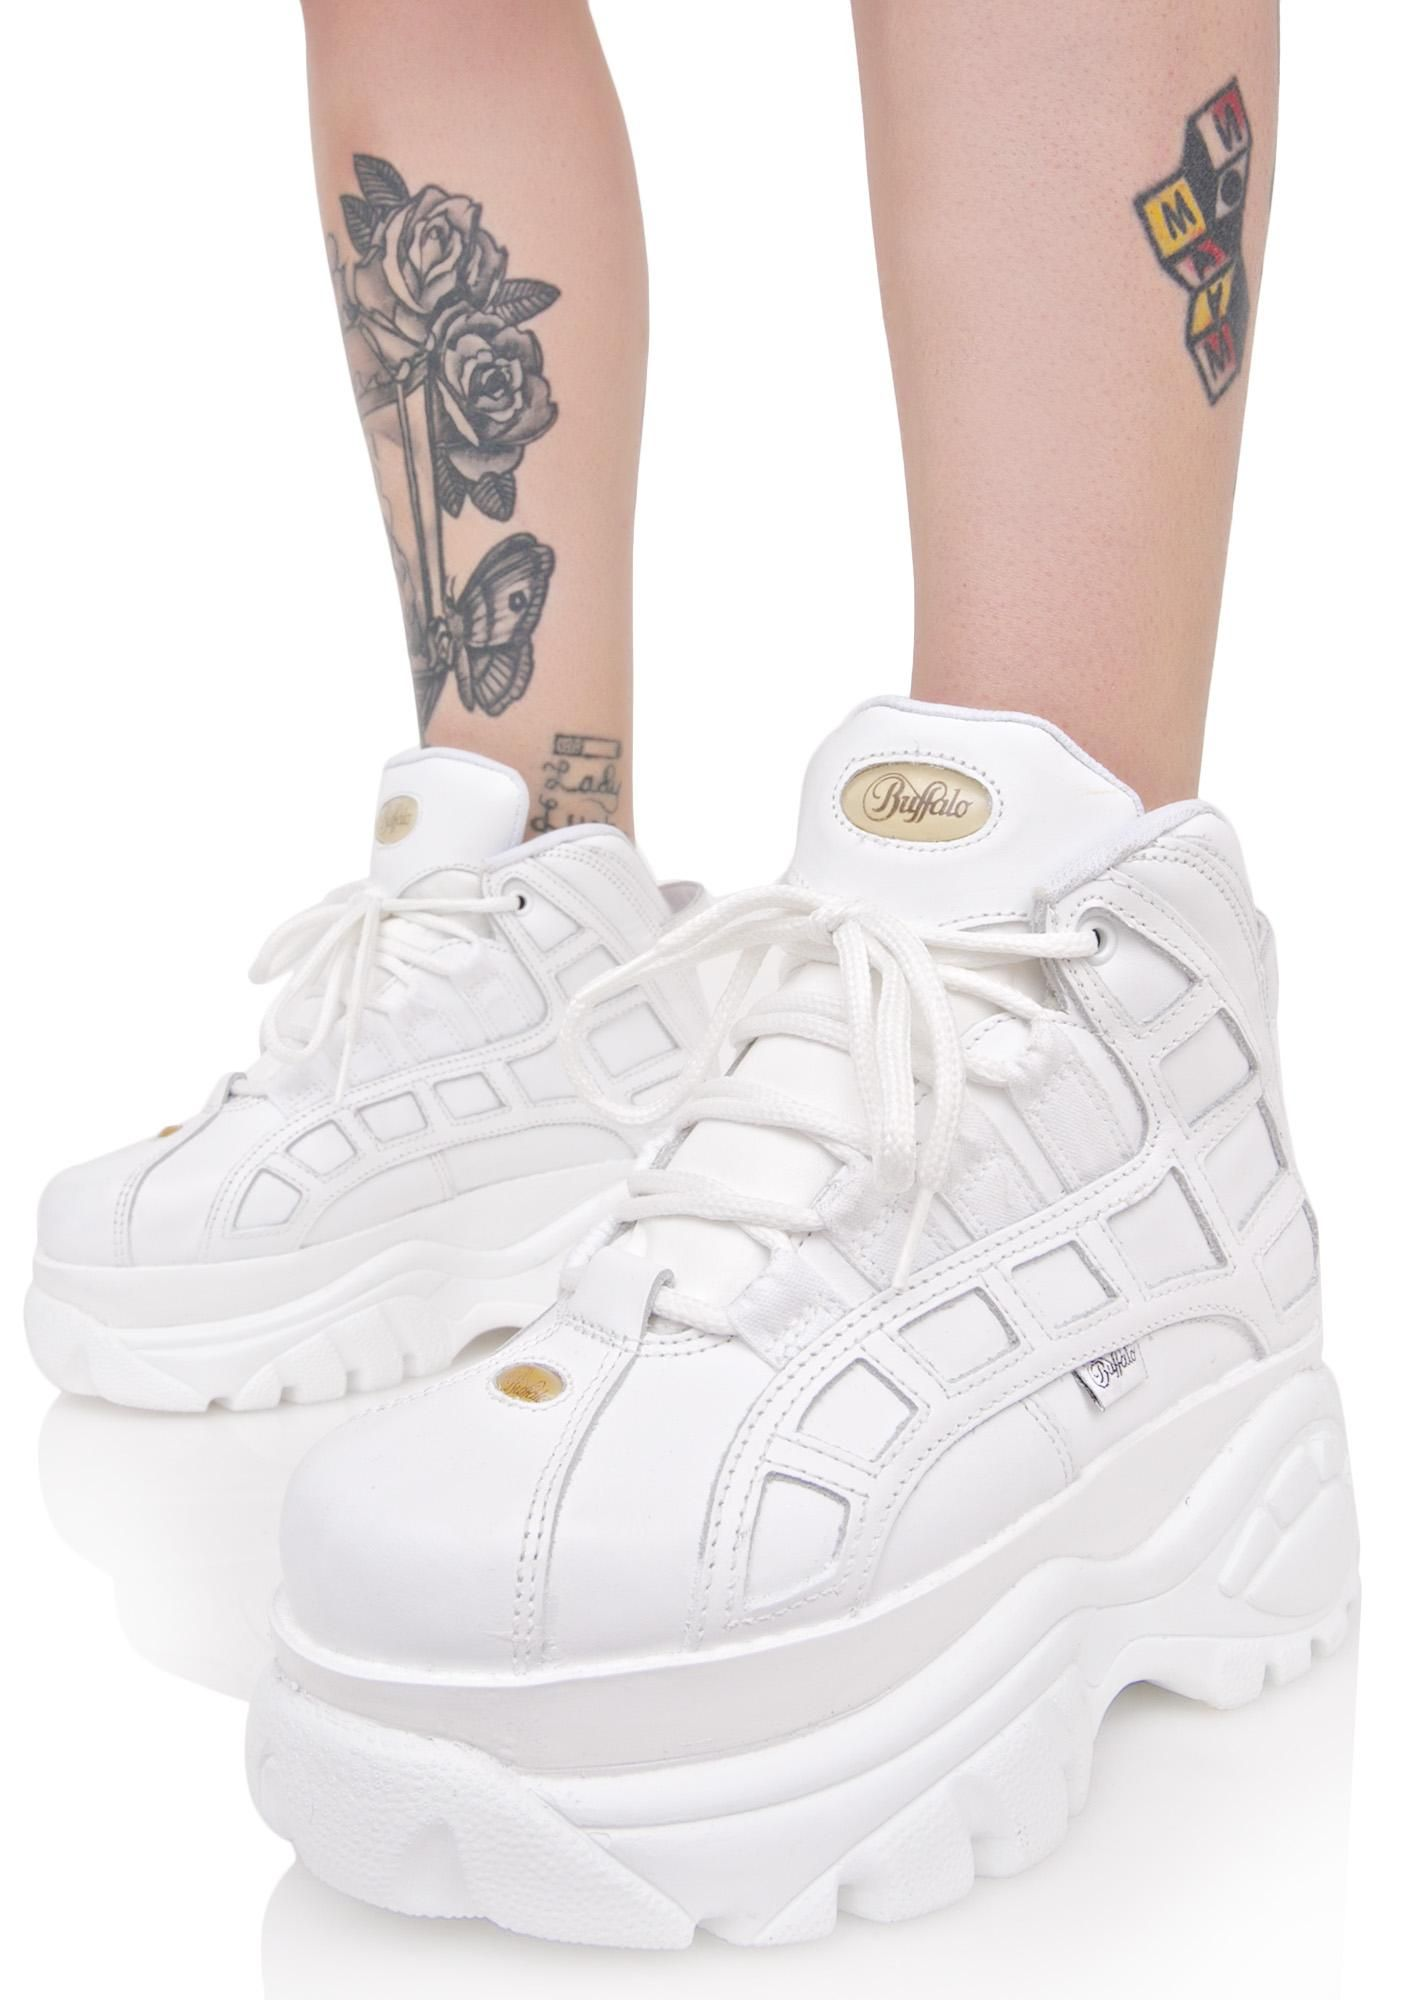 Buffalo Blanco Arched Platform Sneakers Are Gunna Get That Azz To